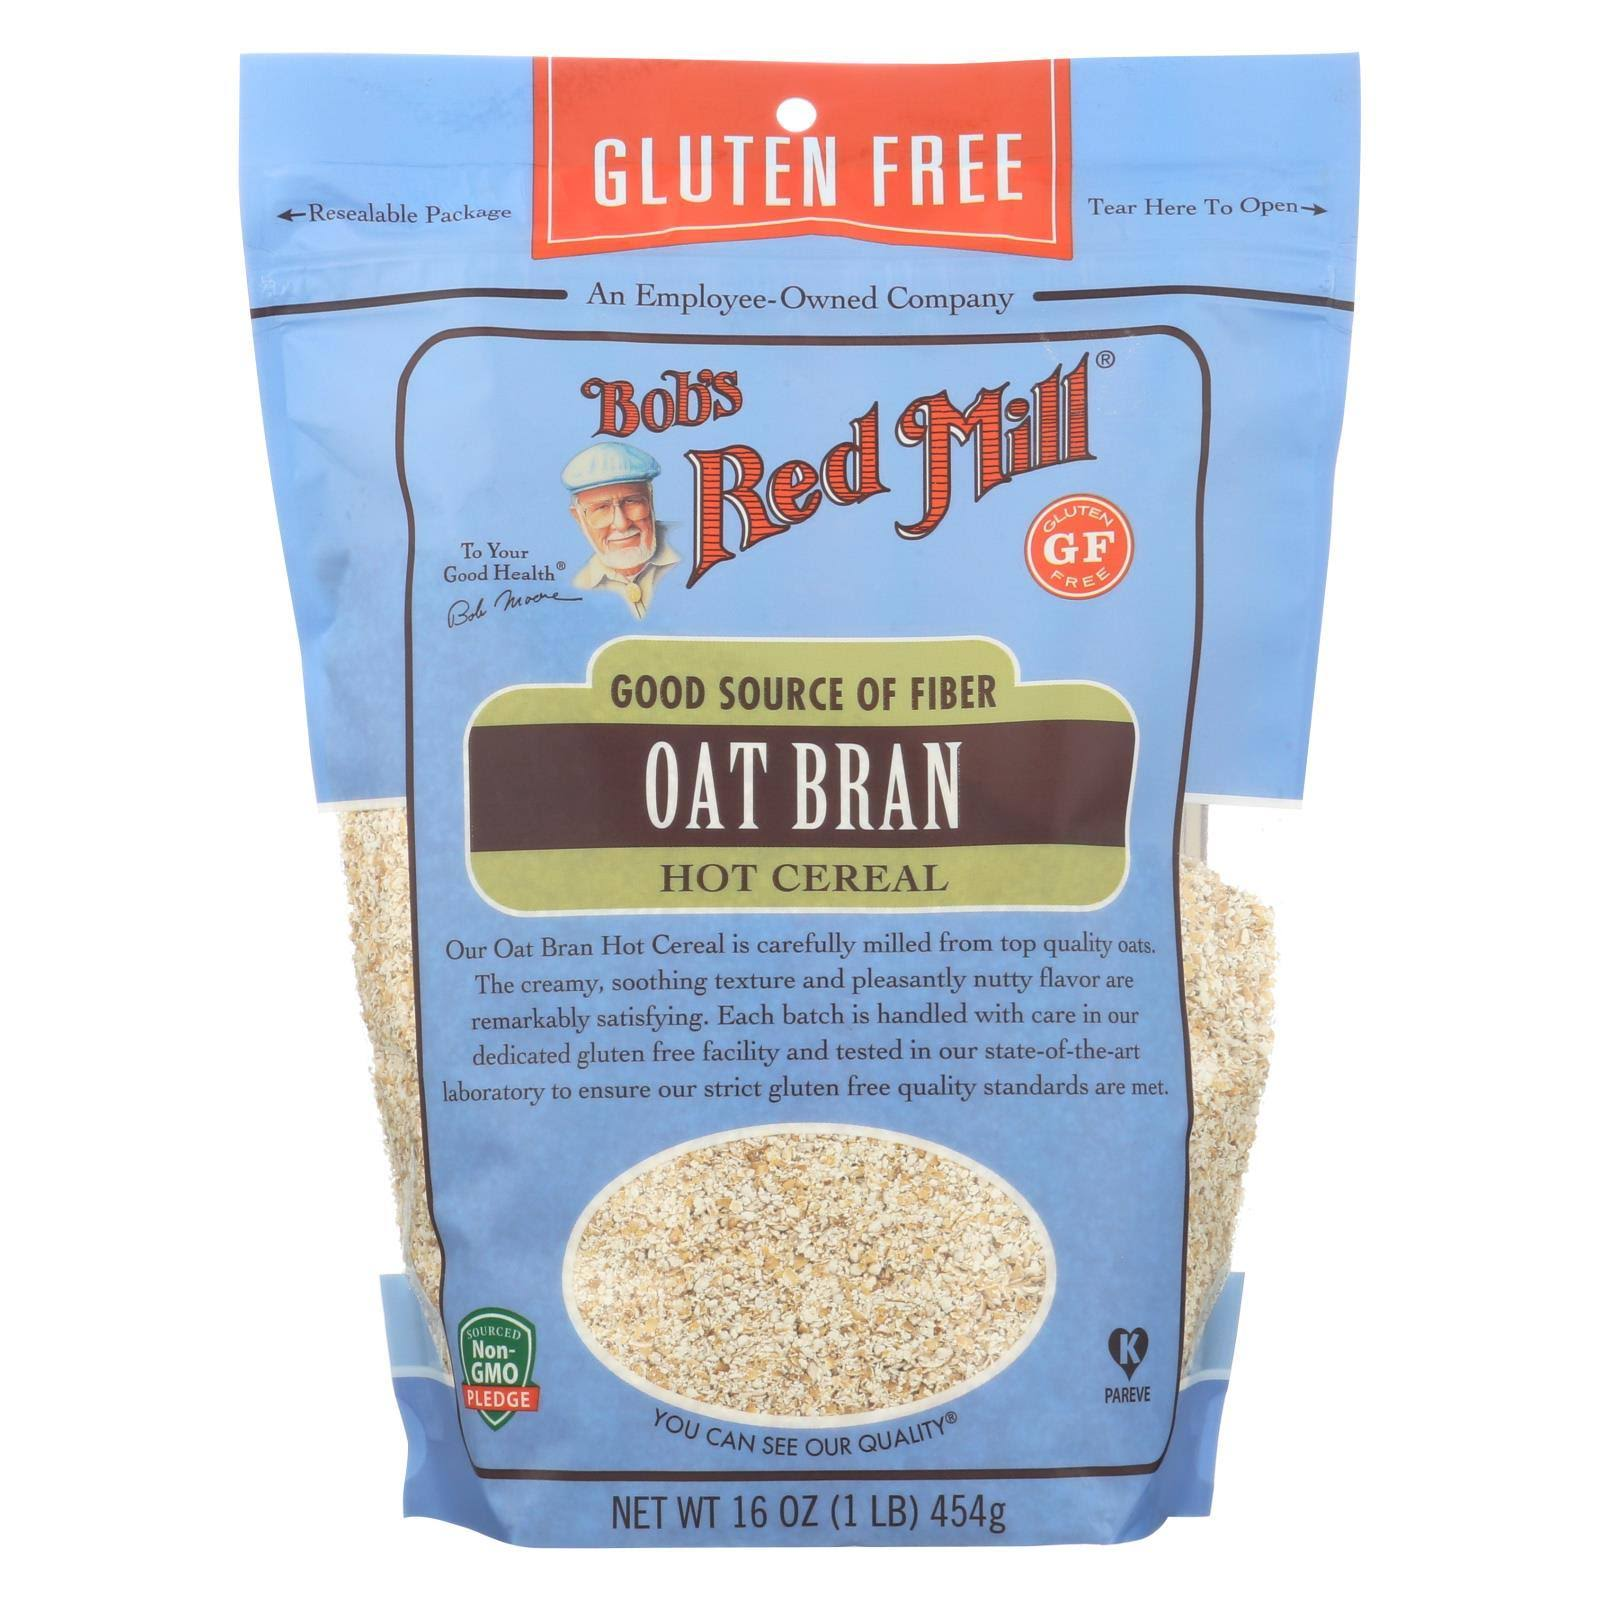 Bob's Red Mill Gluten Free Oat Bran Hot Cereal - 16oz